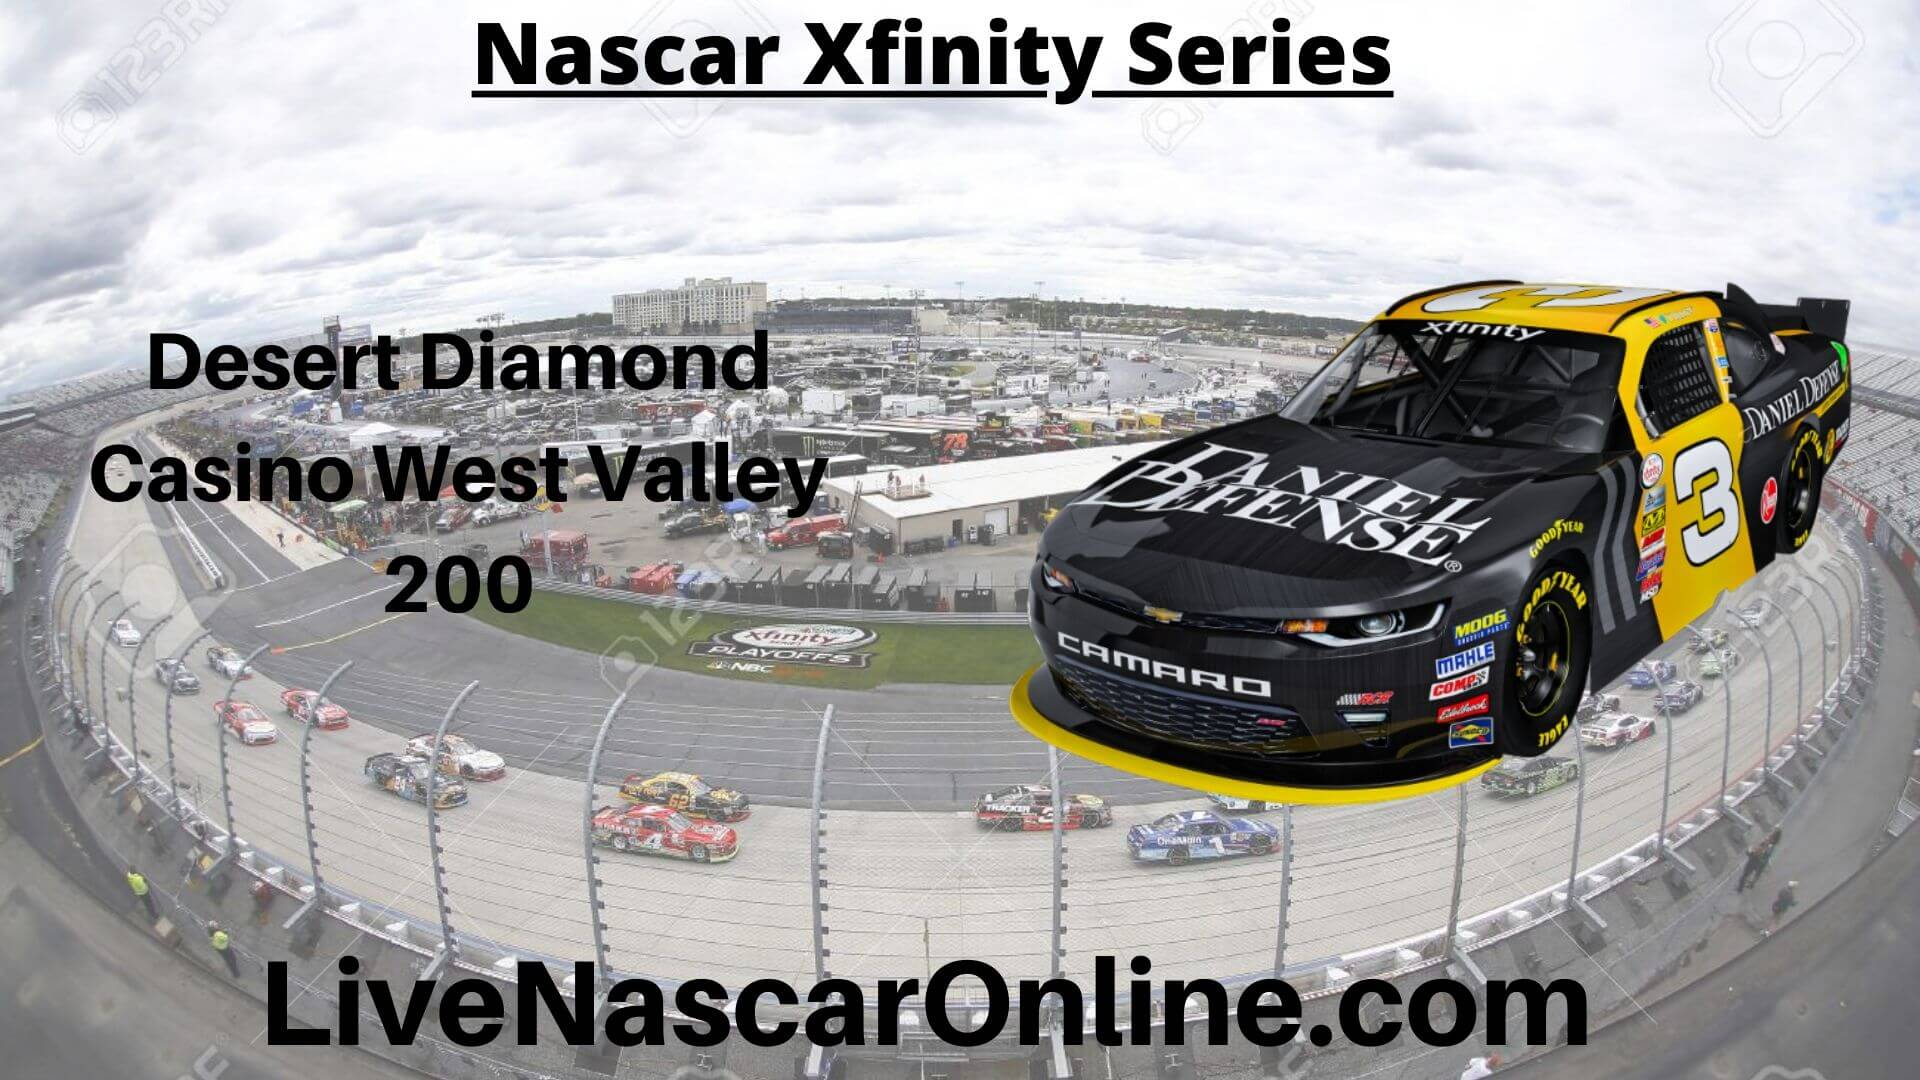 Desert Diamond Casino West Valley 200 Online Stream | NASCAR ISM Raceway 2020